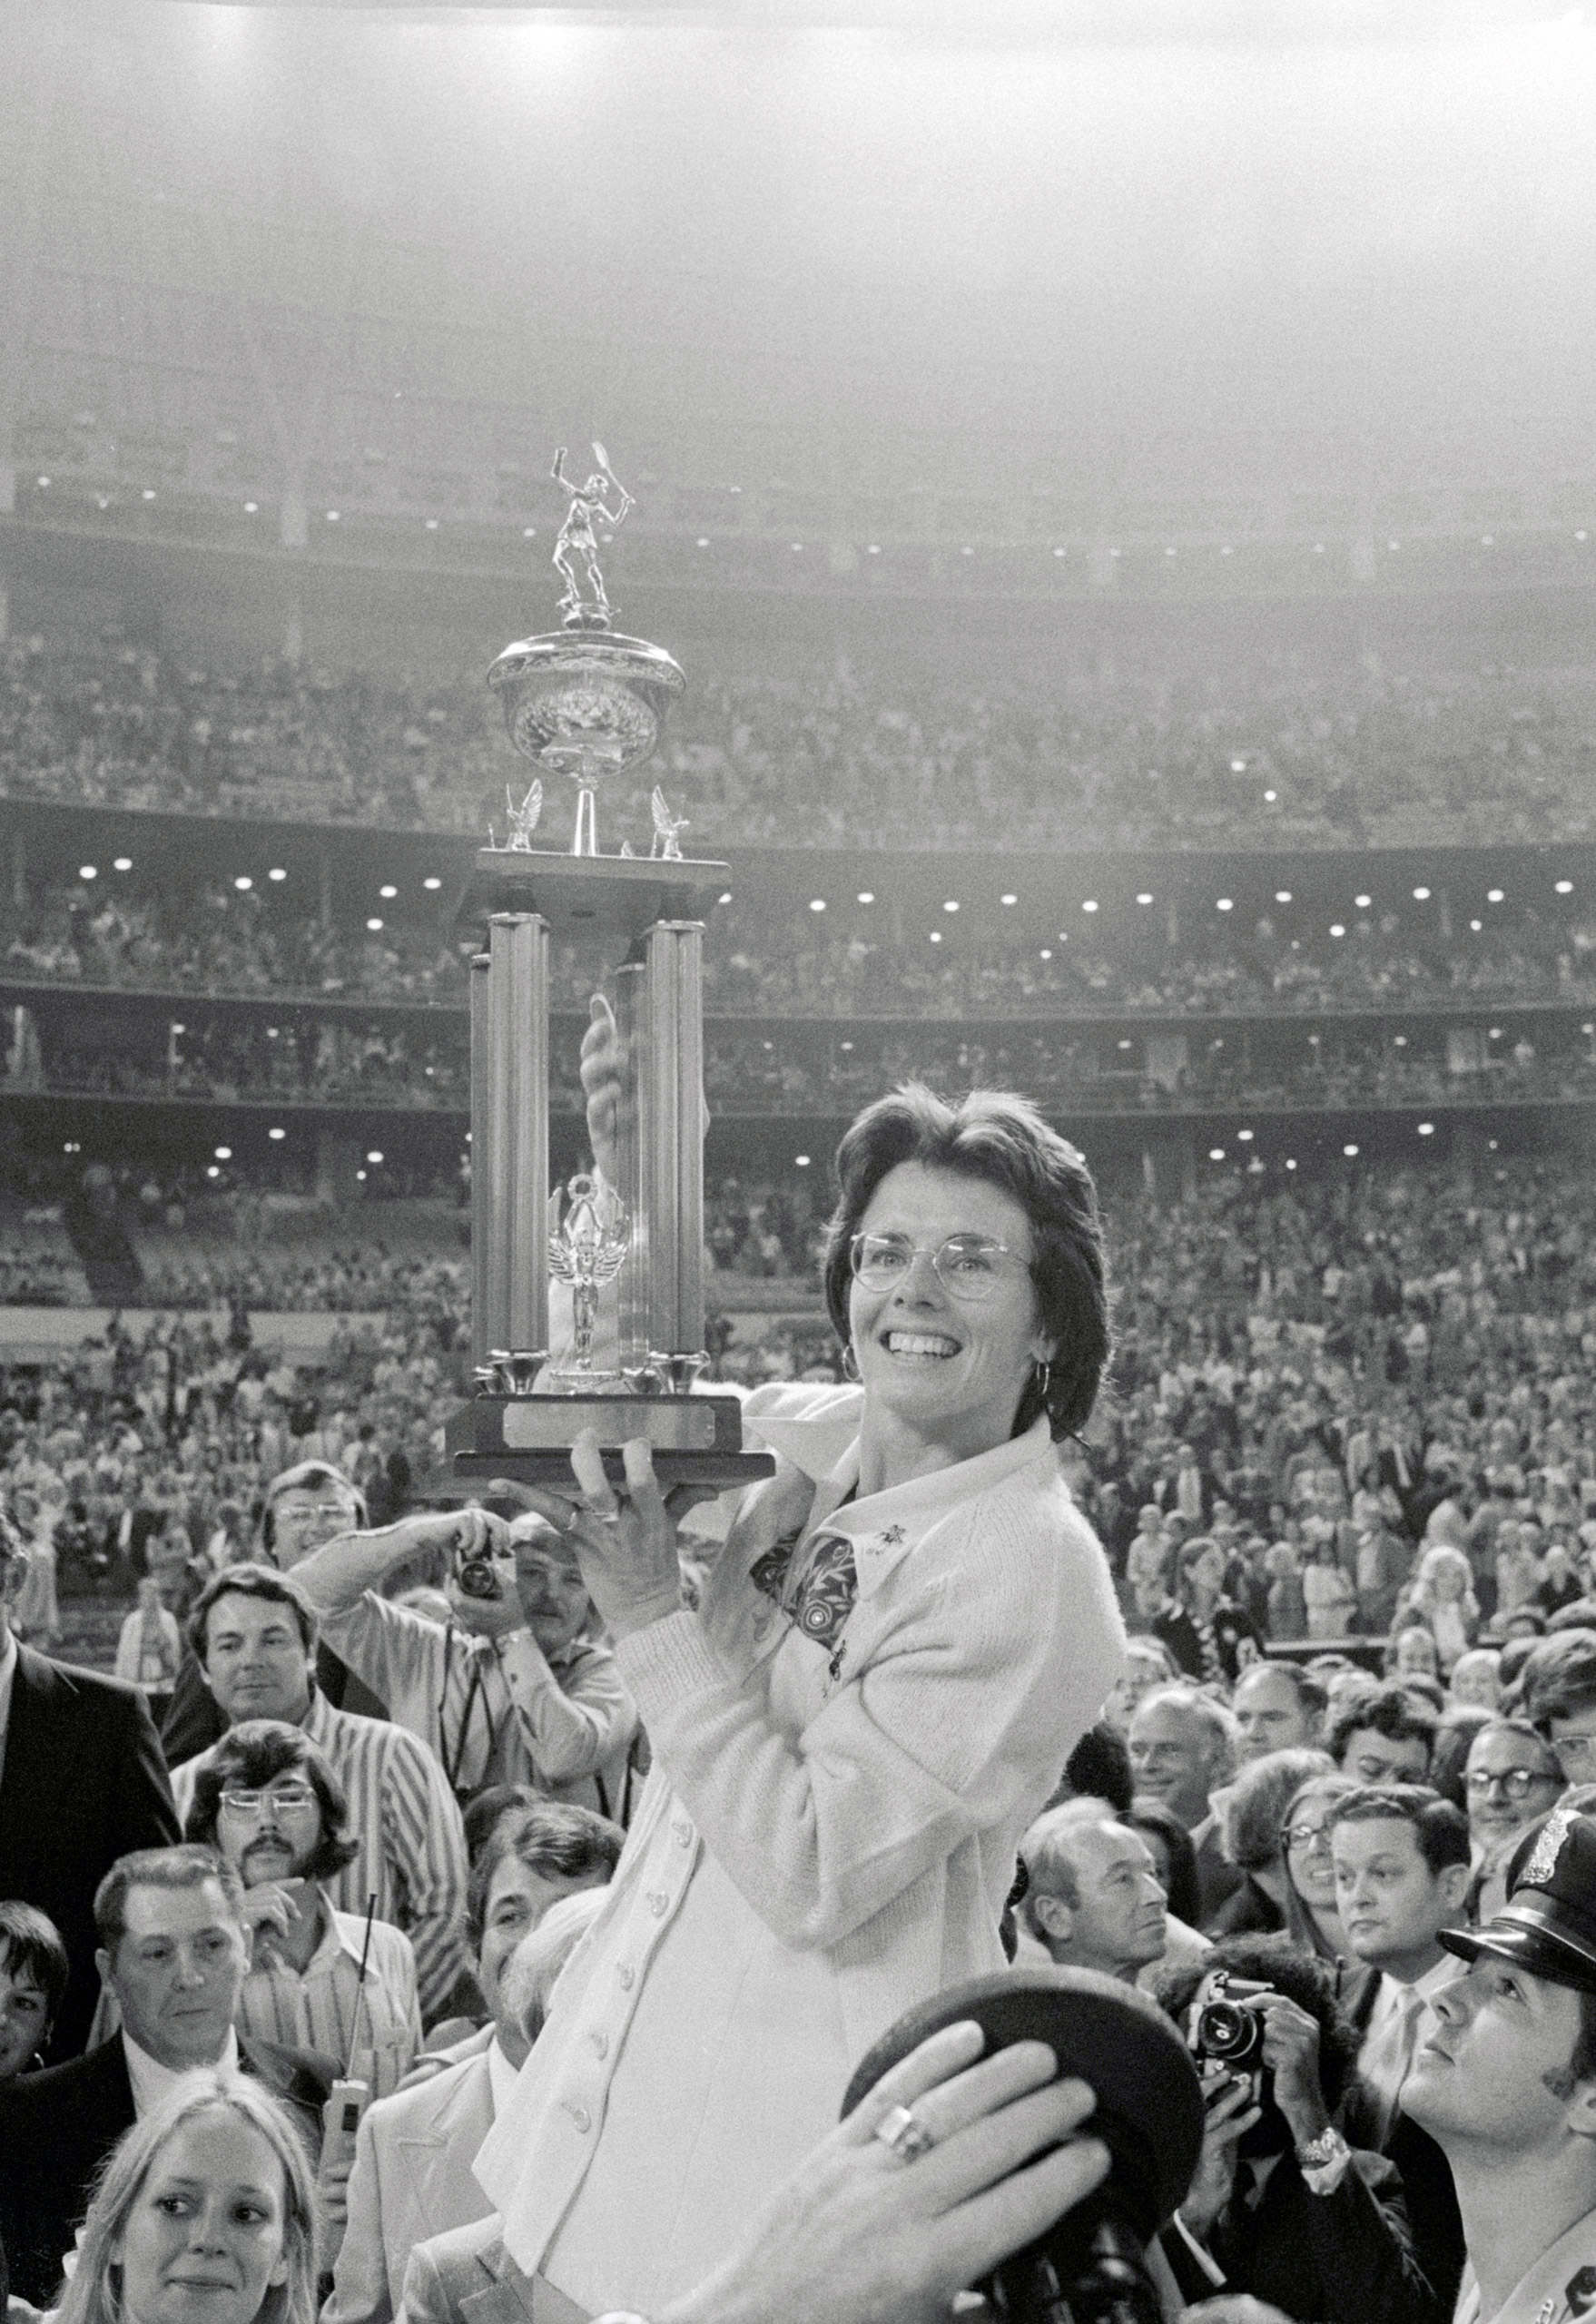 Pro tennis player Billie Jean King holds her newly won trophy high after beating Bobby Riggs in their $100,000 winner-take-all  Battle of the Sexes  tennis match on September 20, 1973.  [The] conventional wisdom [was] that an adequate male player should be able to beat a first-class woman,  TIME commented.  Almost everyone was wrong.